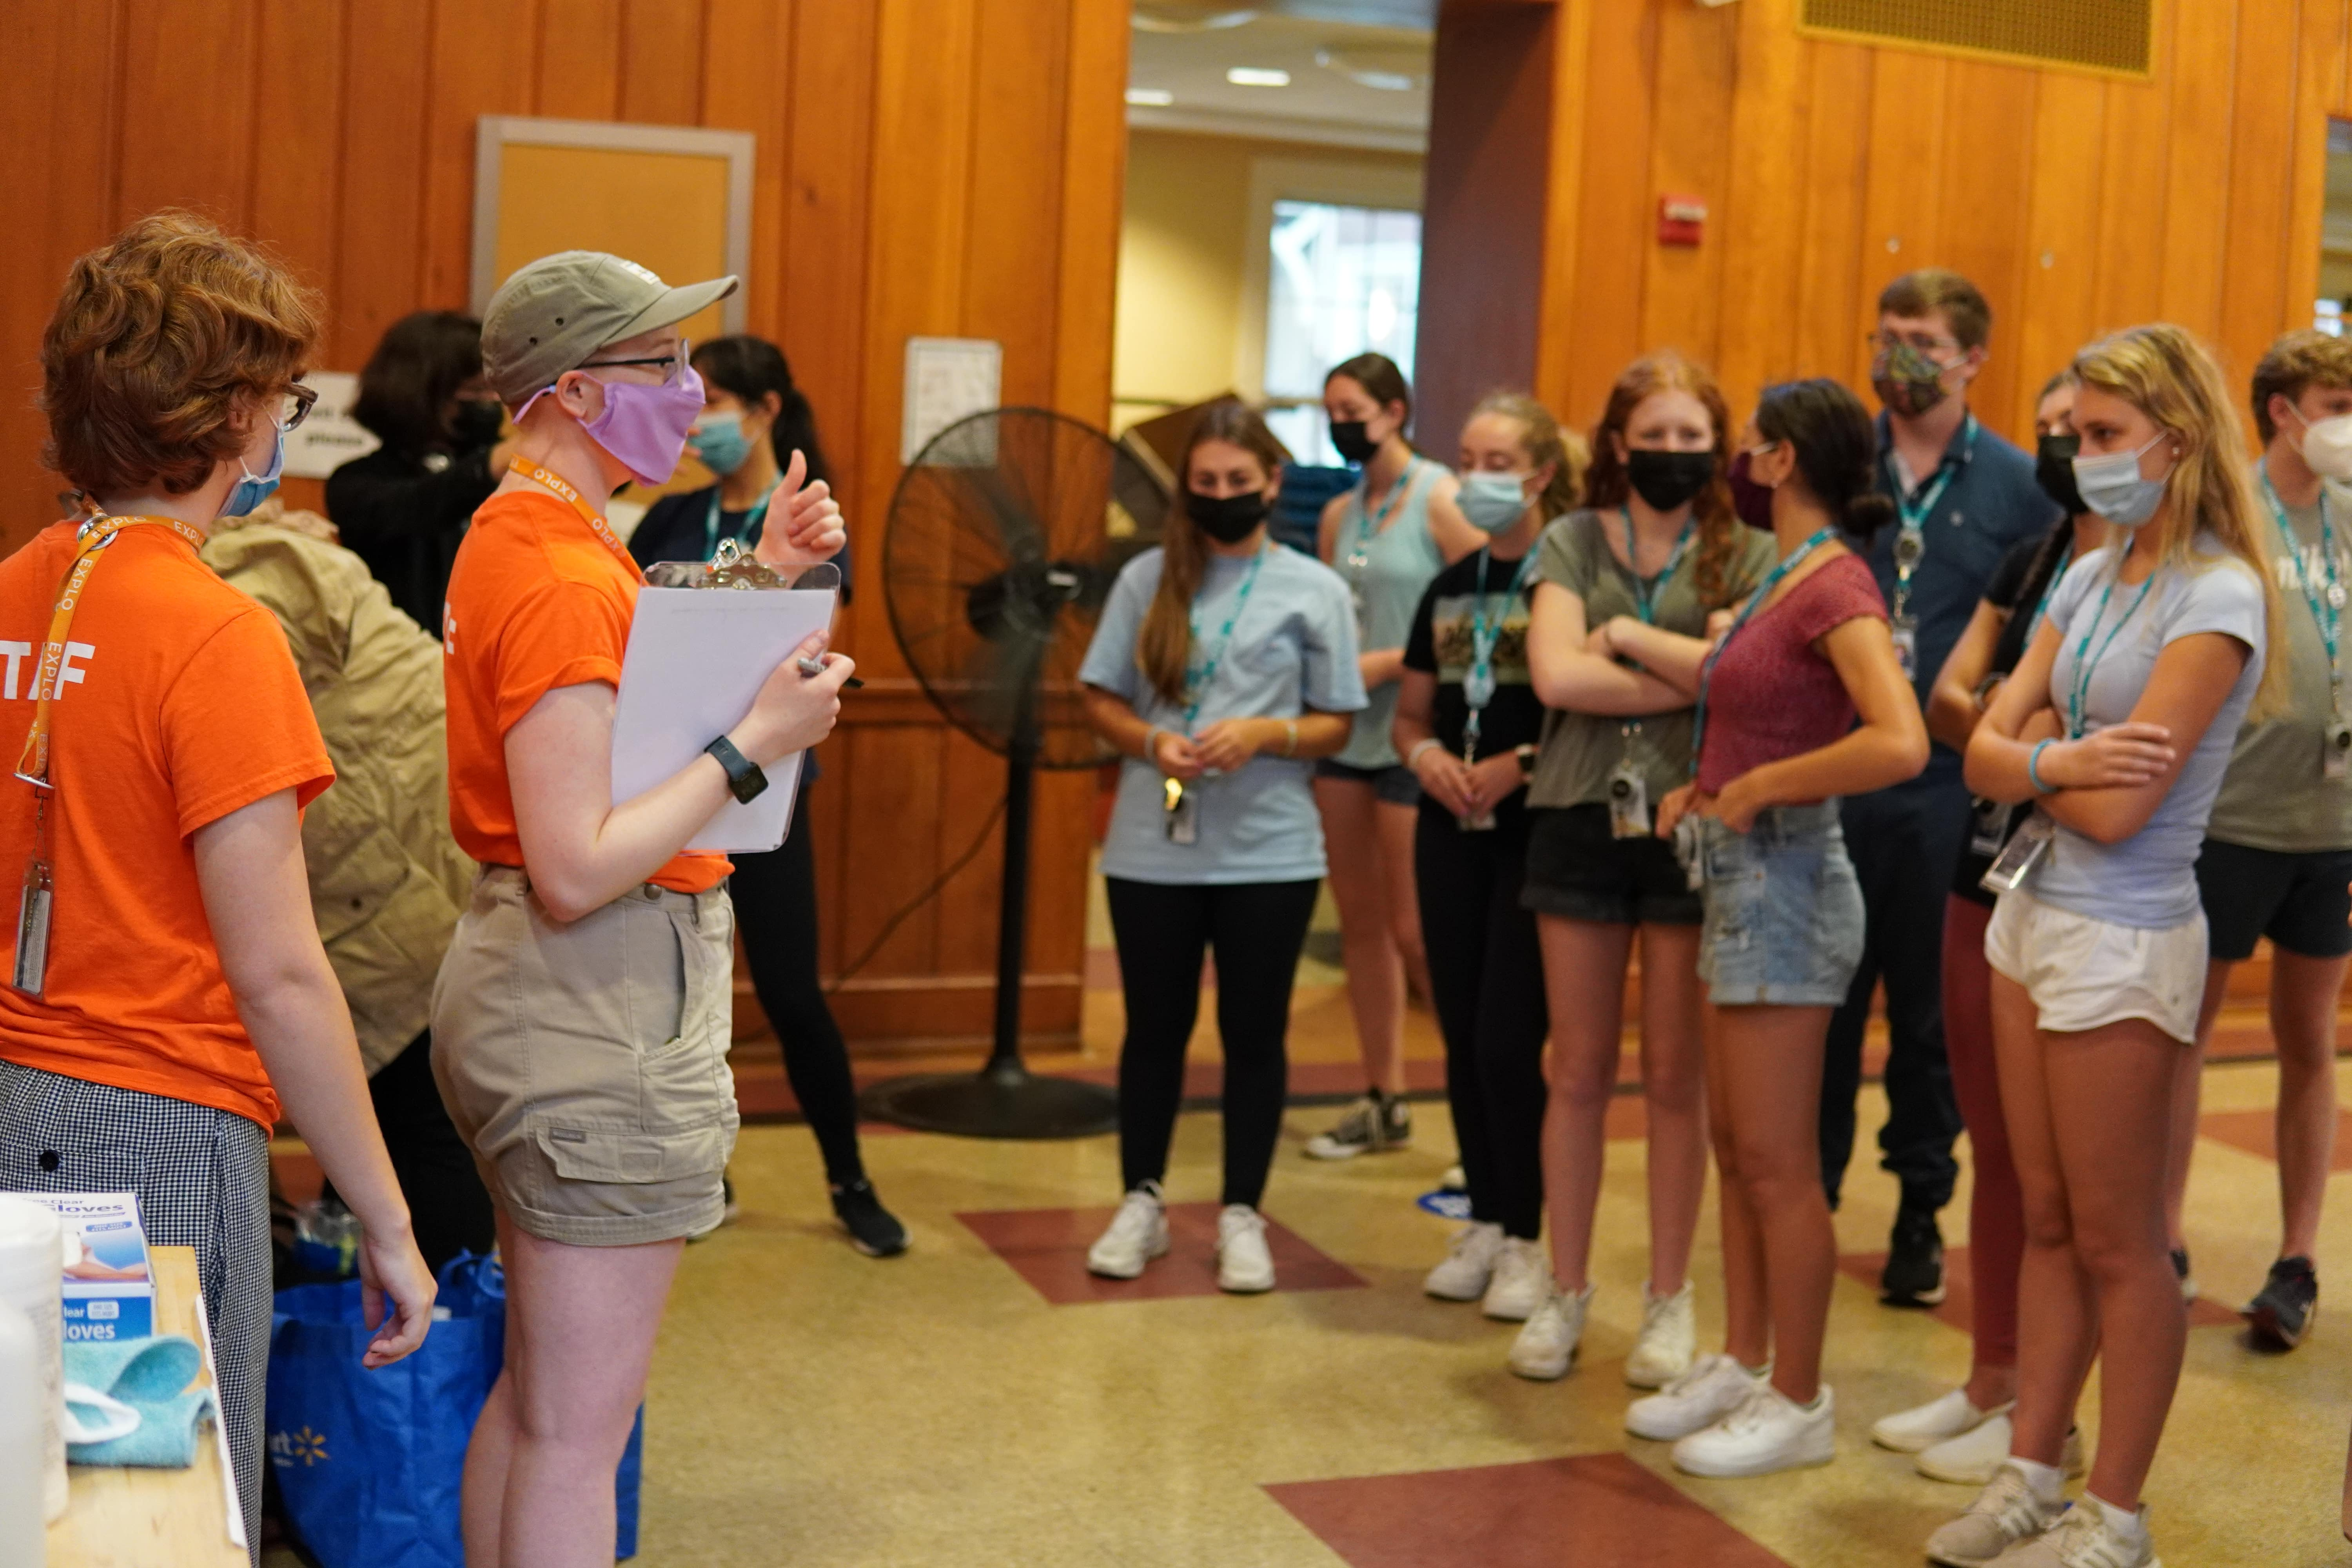 Staff members explain the competition's rules and reveal the secret ingredient to a small crowd of listening students.